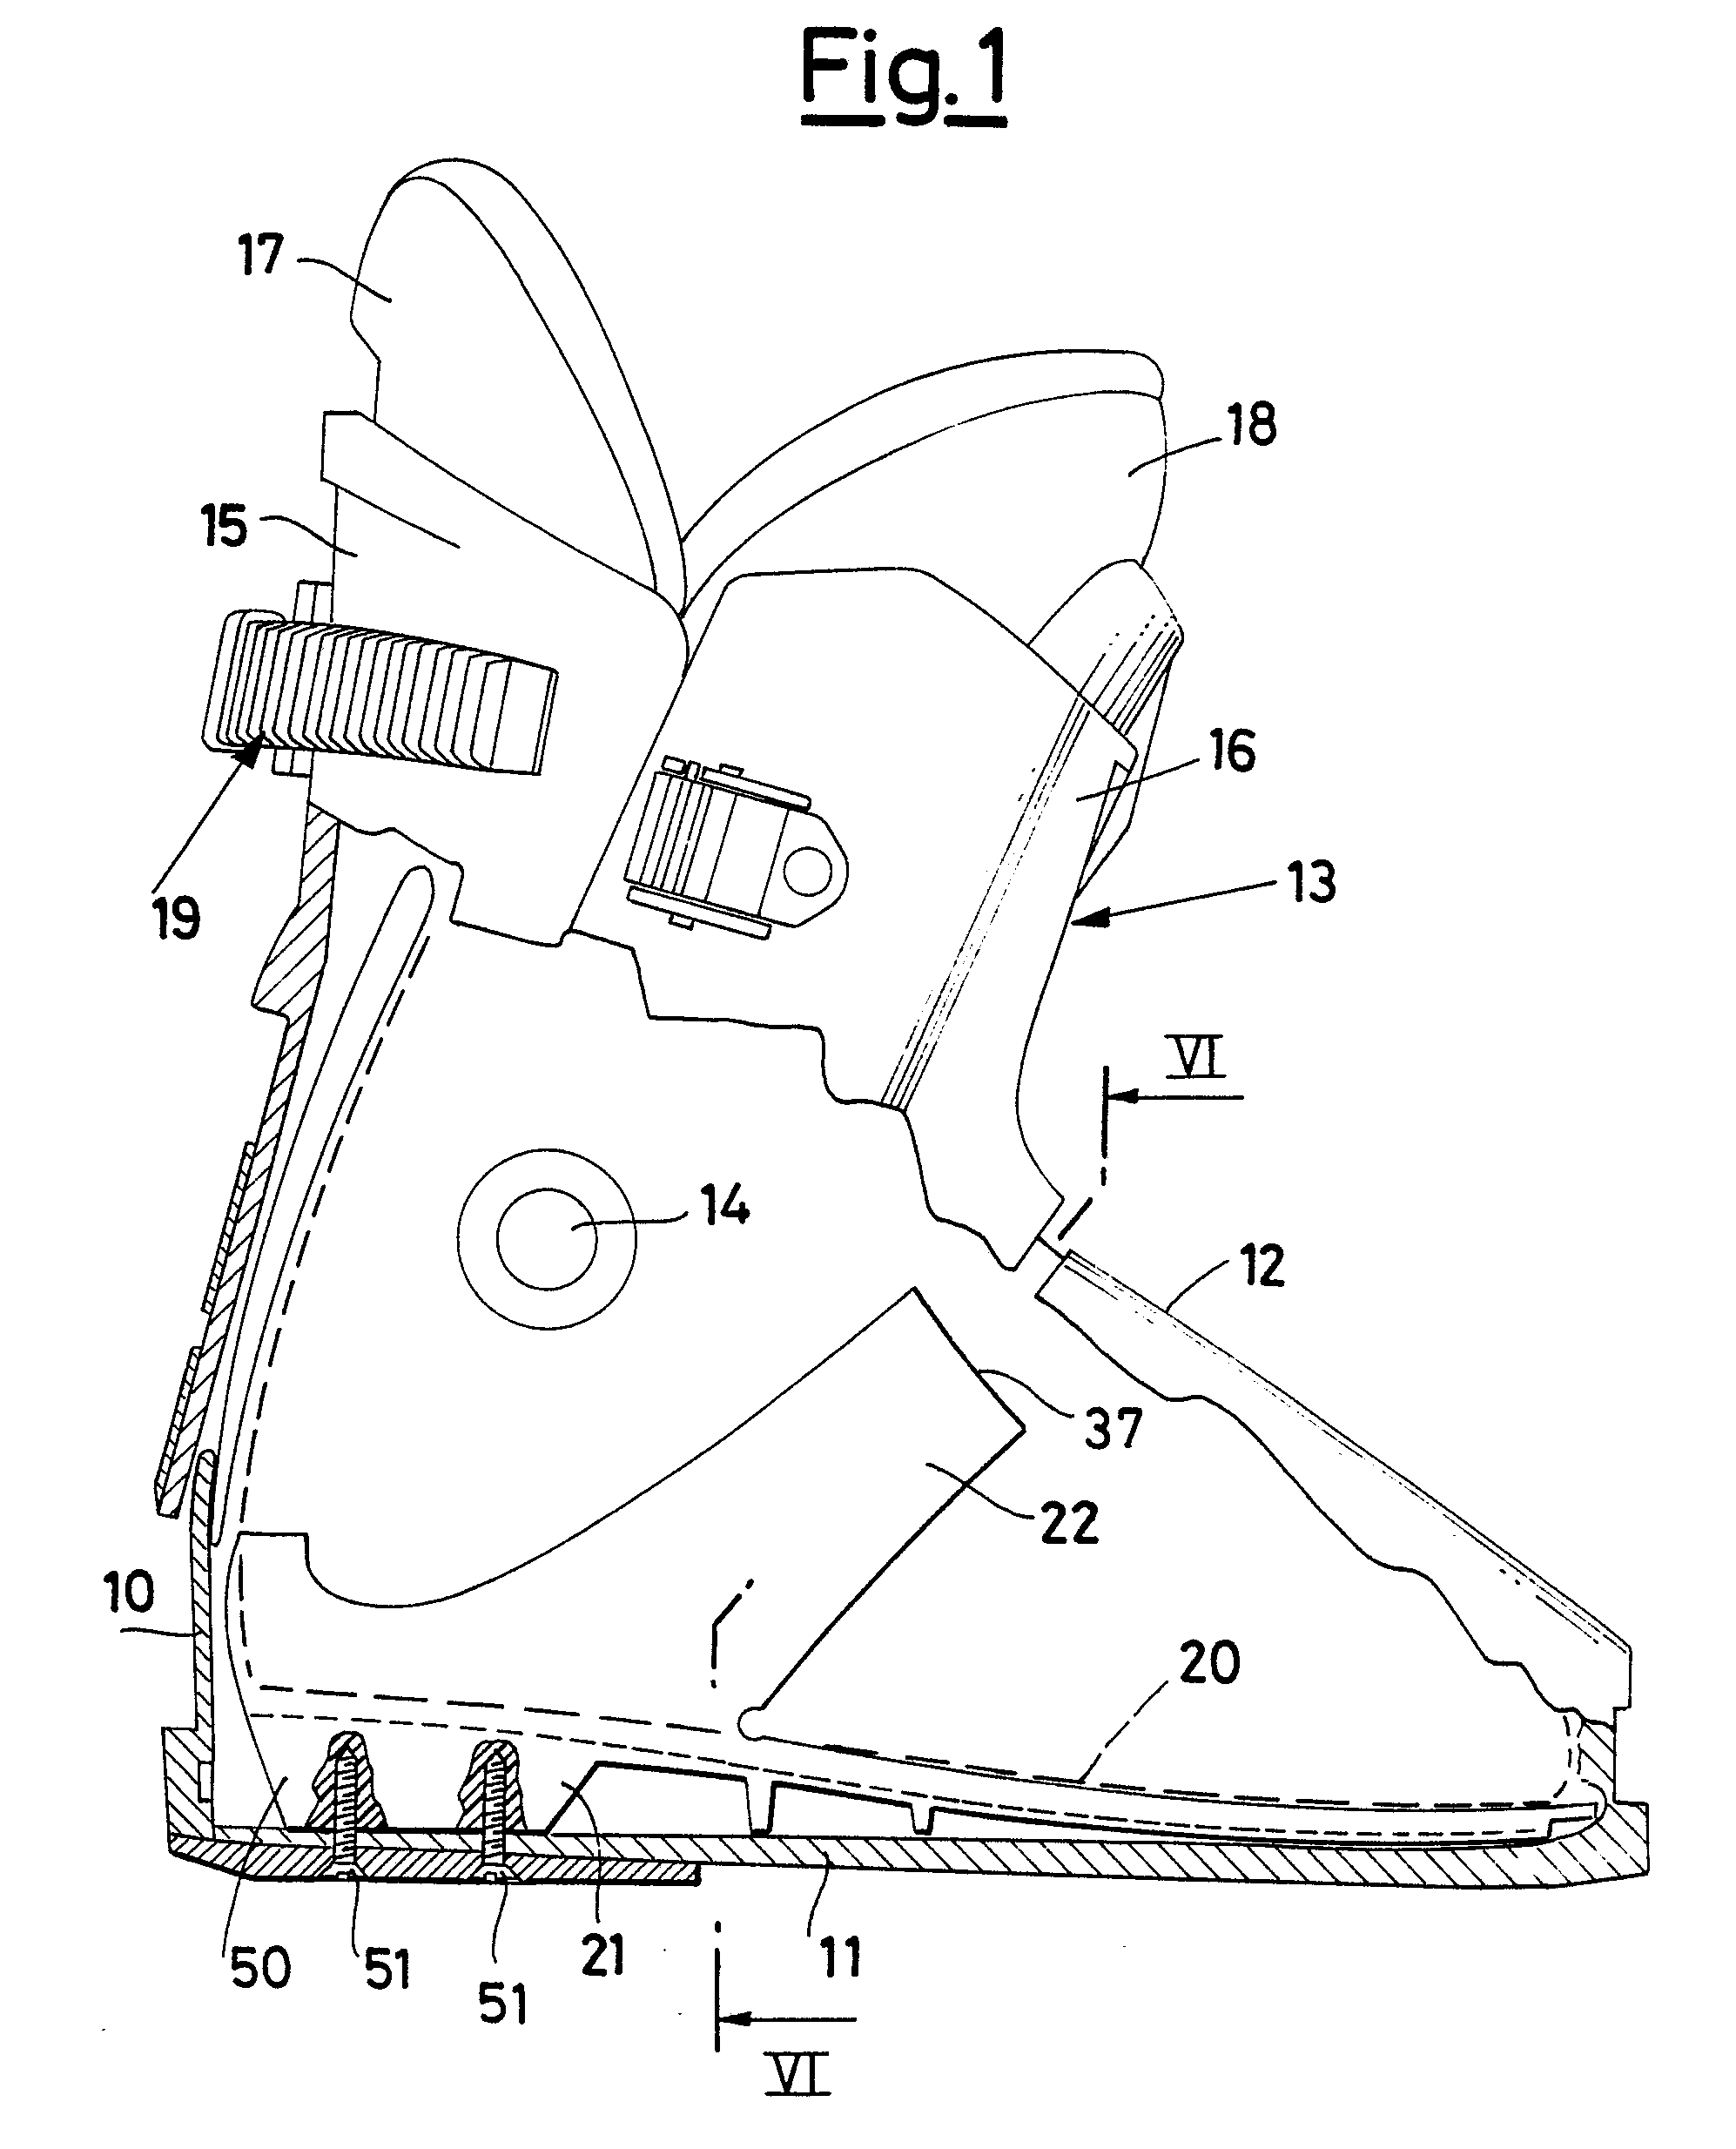 patente ep0252517a2 foot cl ing structure for shoes and boots Anatomy of Heel Pain patent drawing